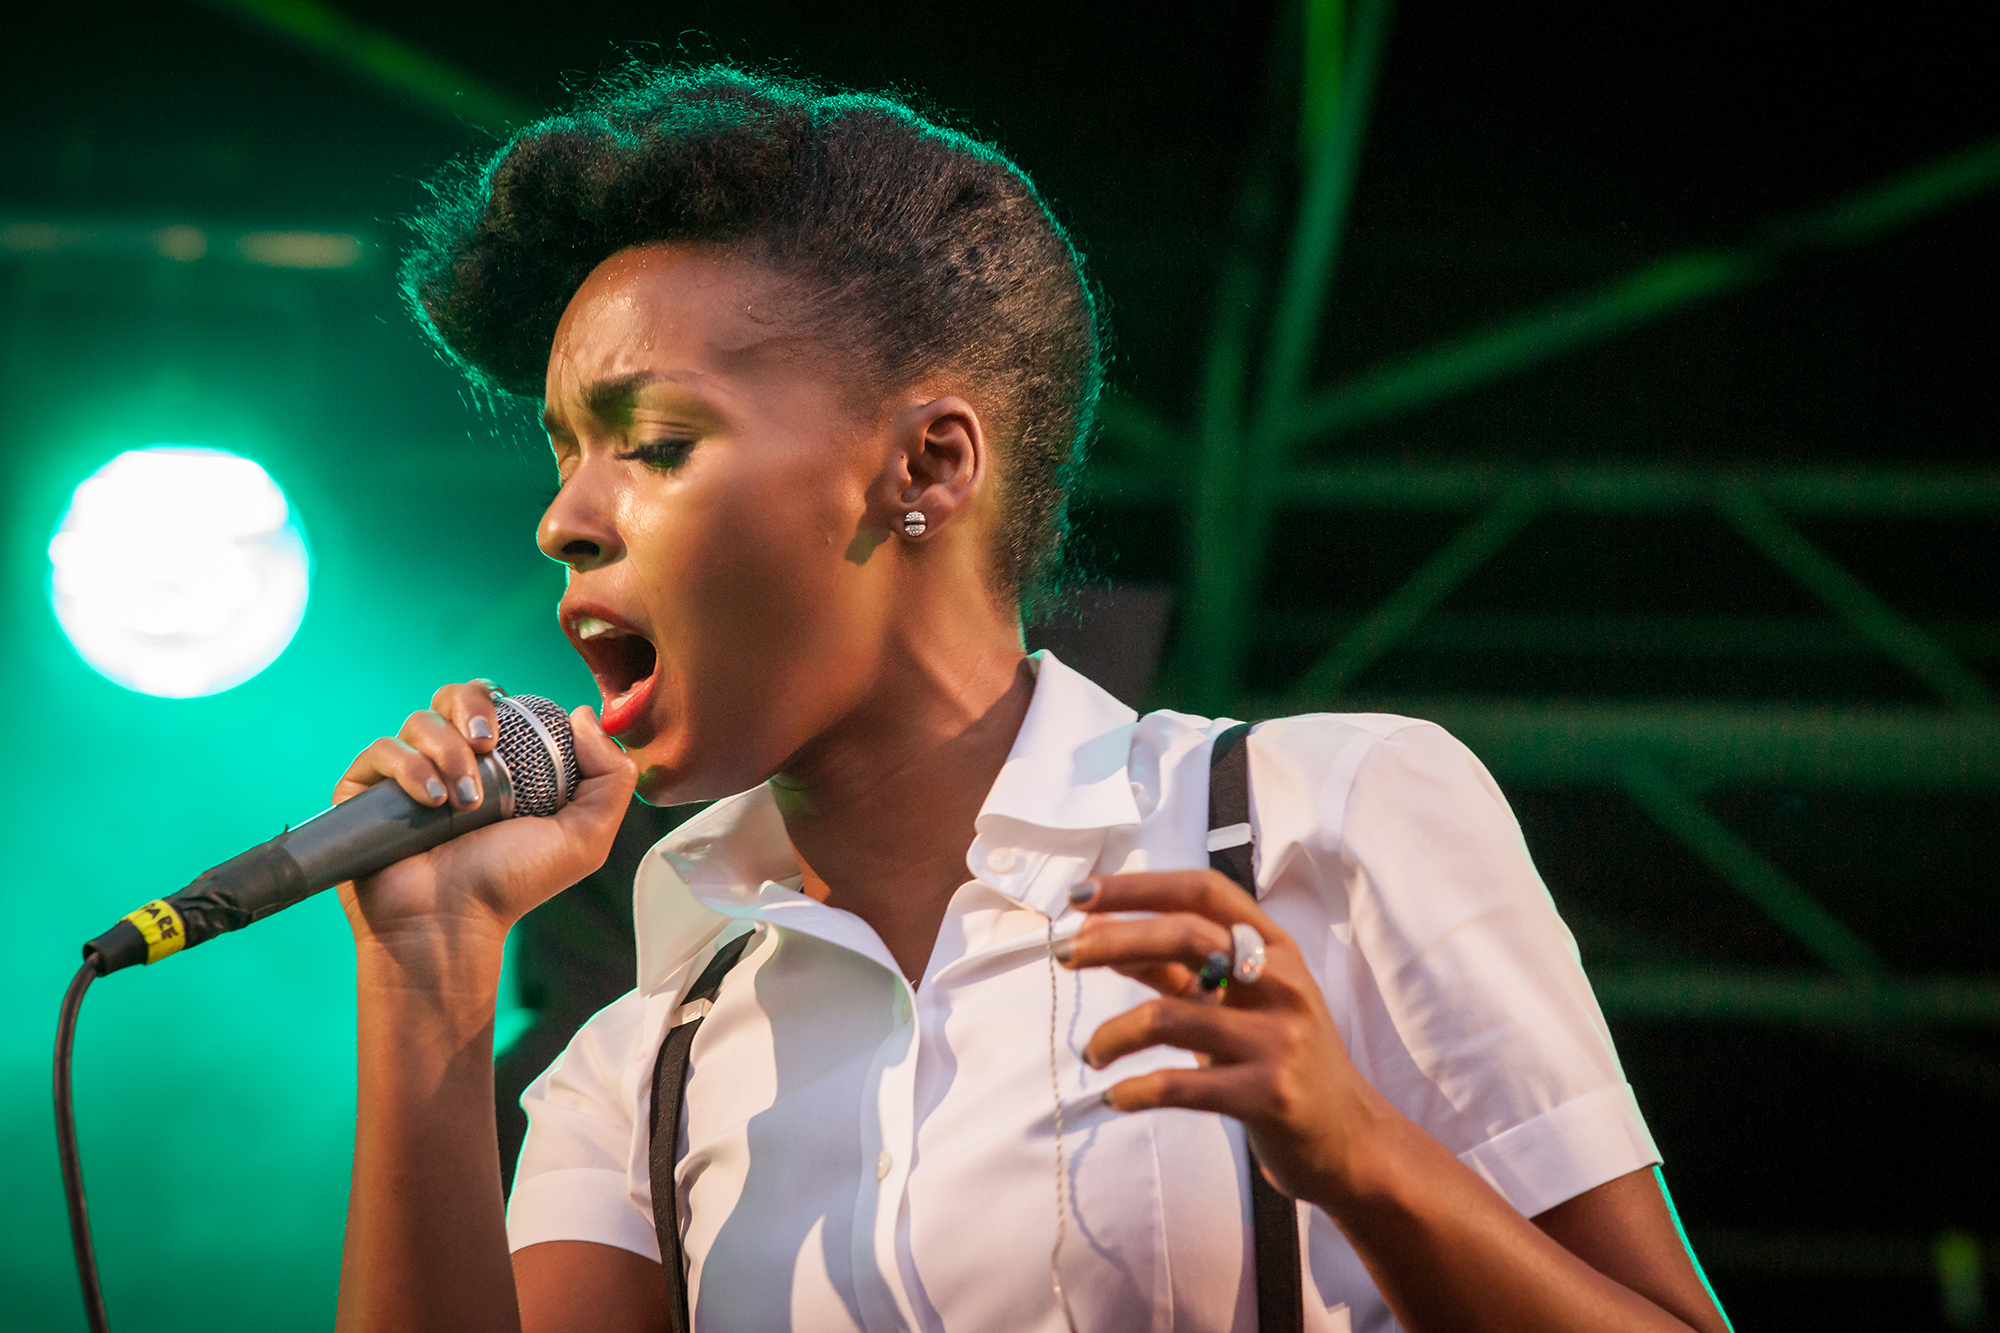 Janelle Monáe will headline the opening gala for the MCA's Takashi Murakami exhibition